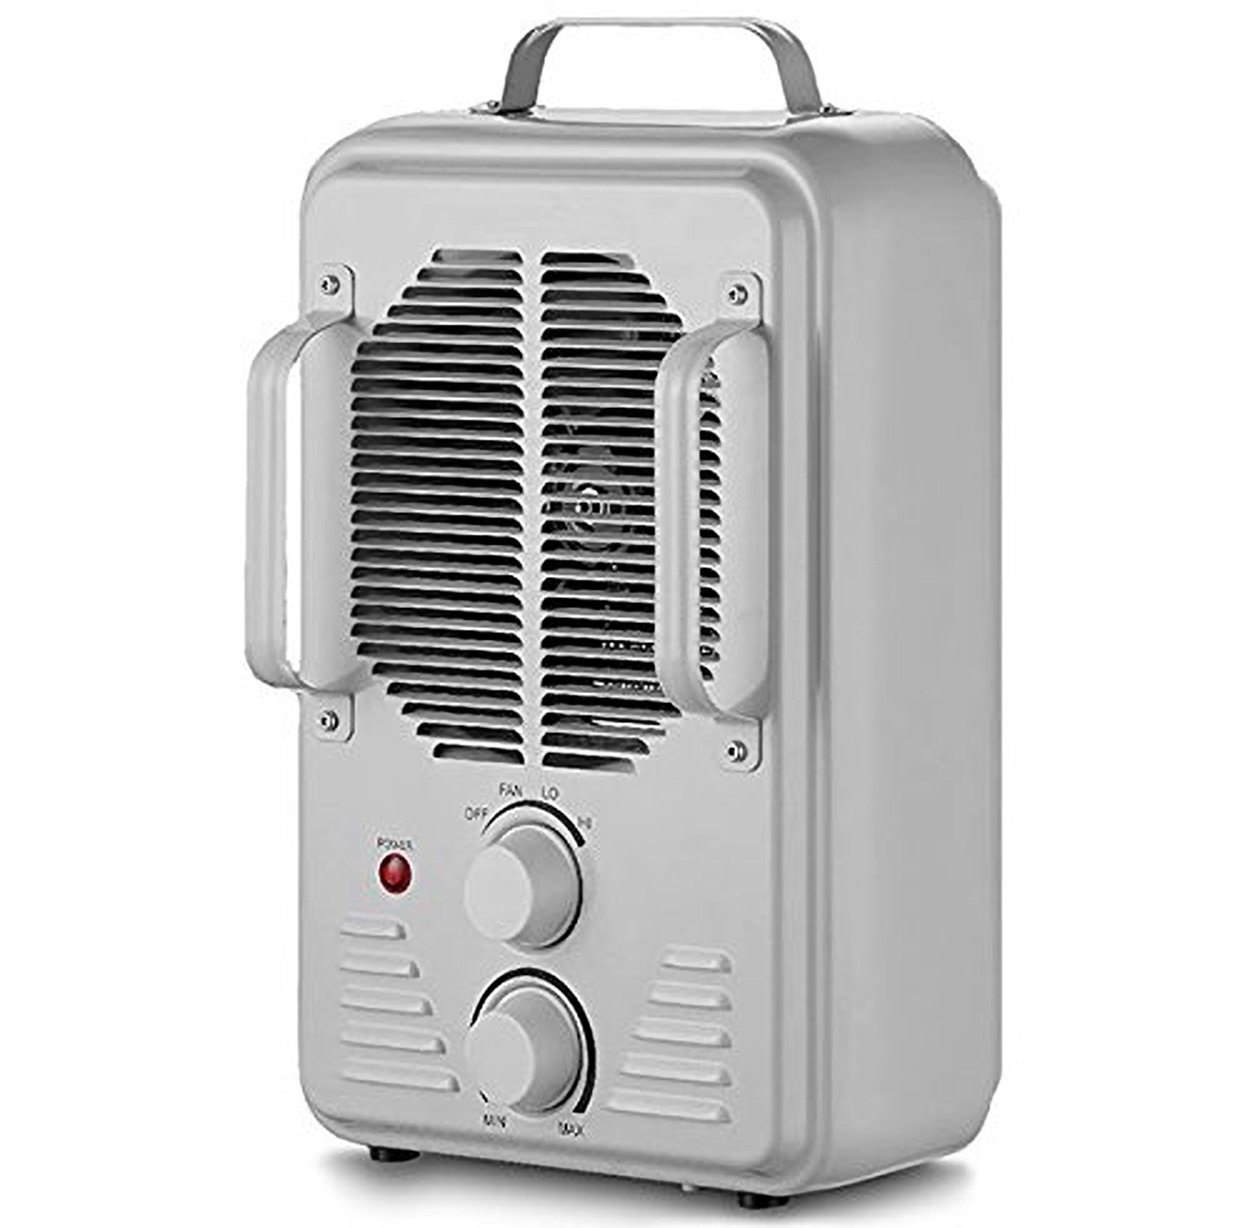 Space Heater with Thermostat 2 Heat Settings & Fan Setting - Durable Metal Design